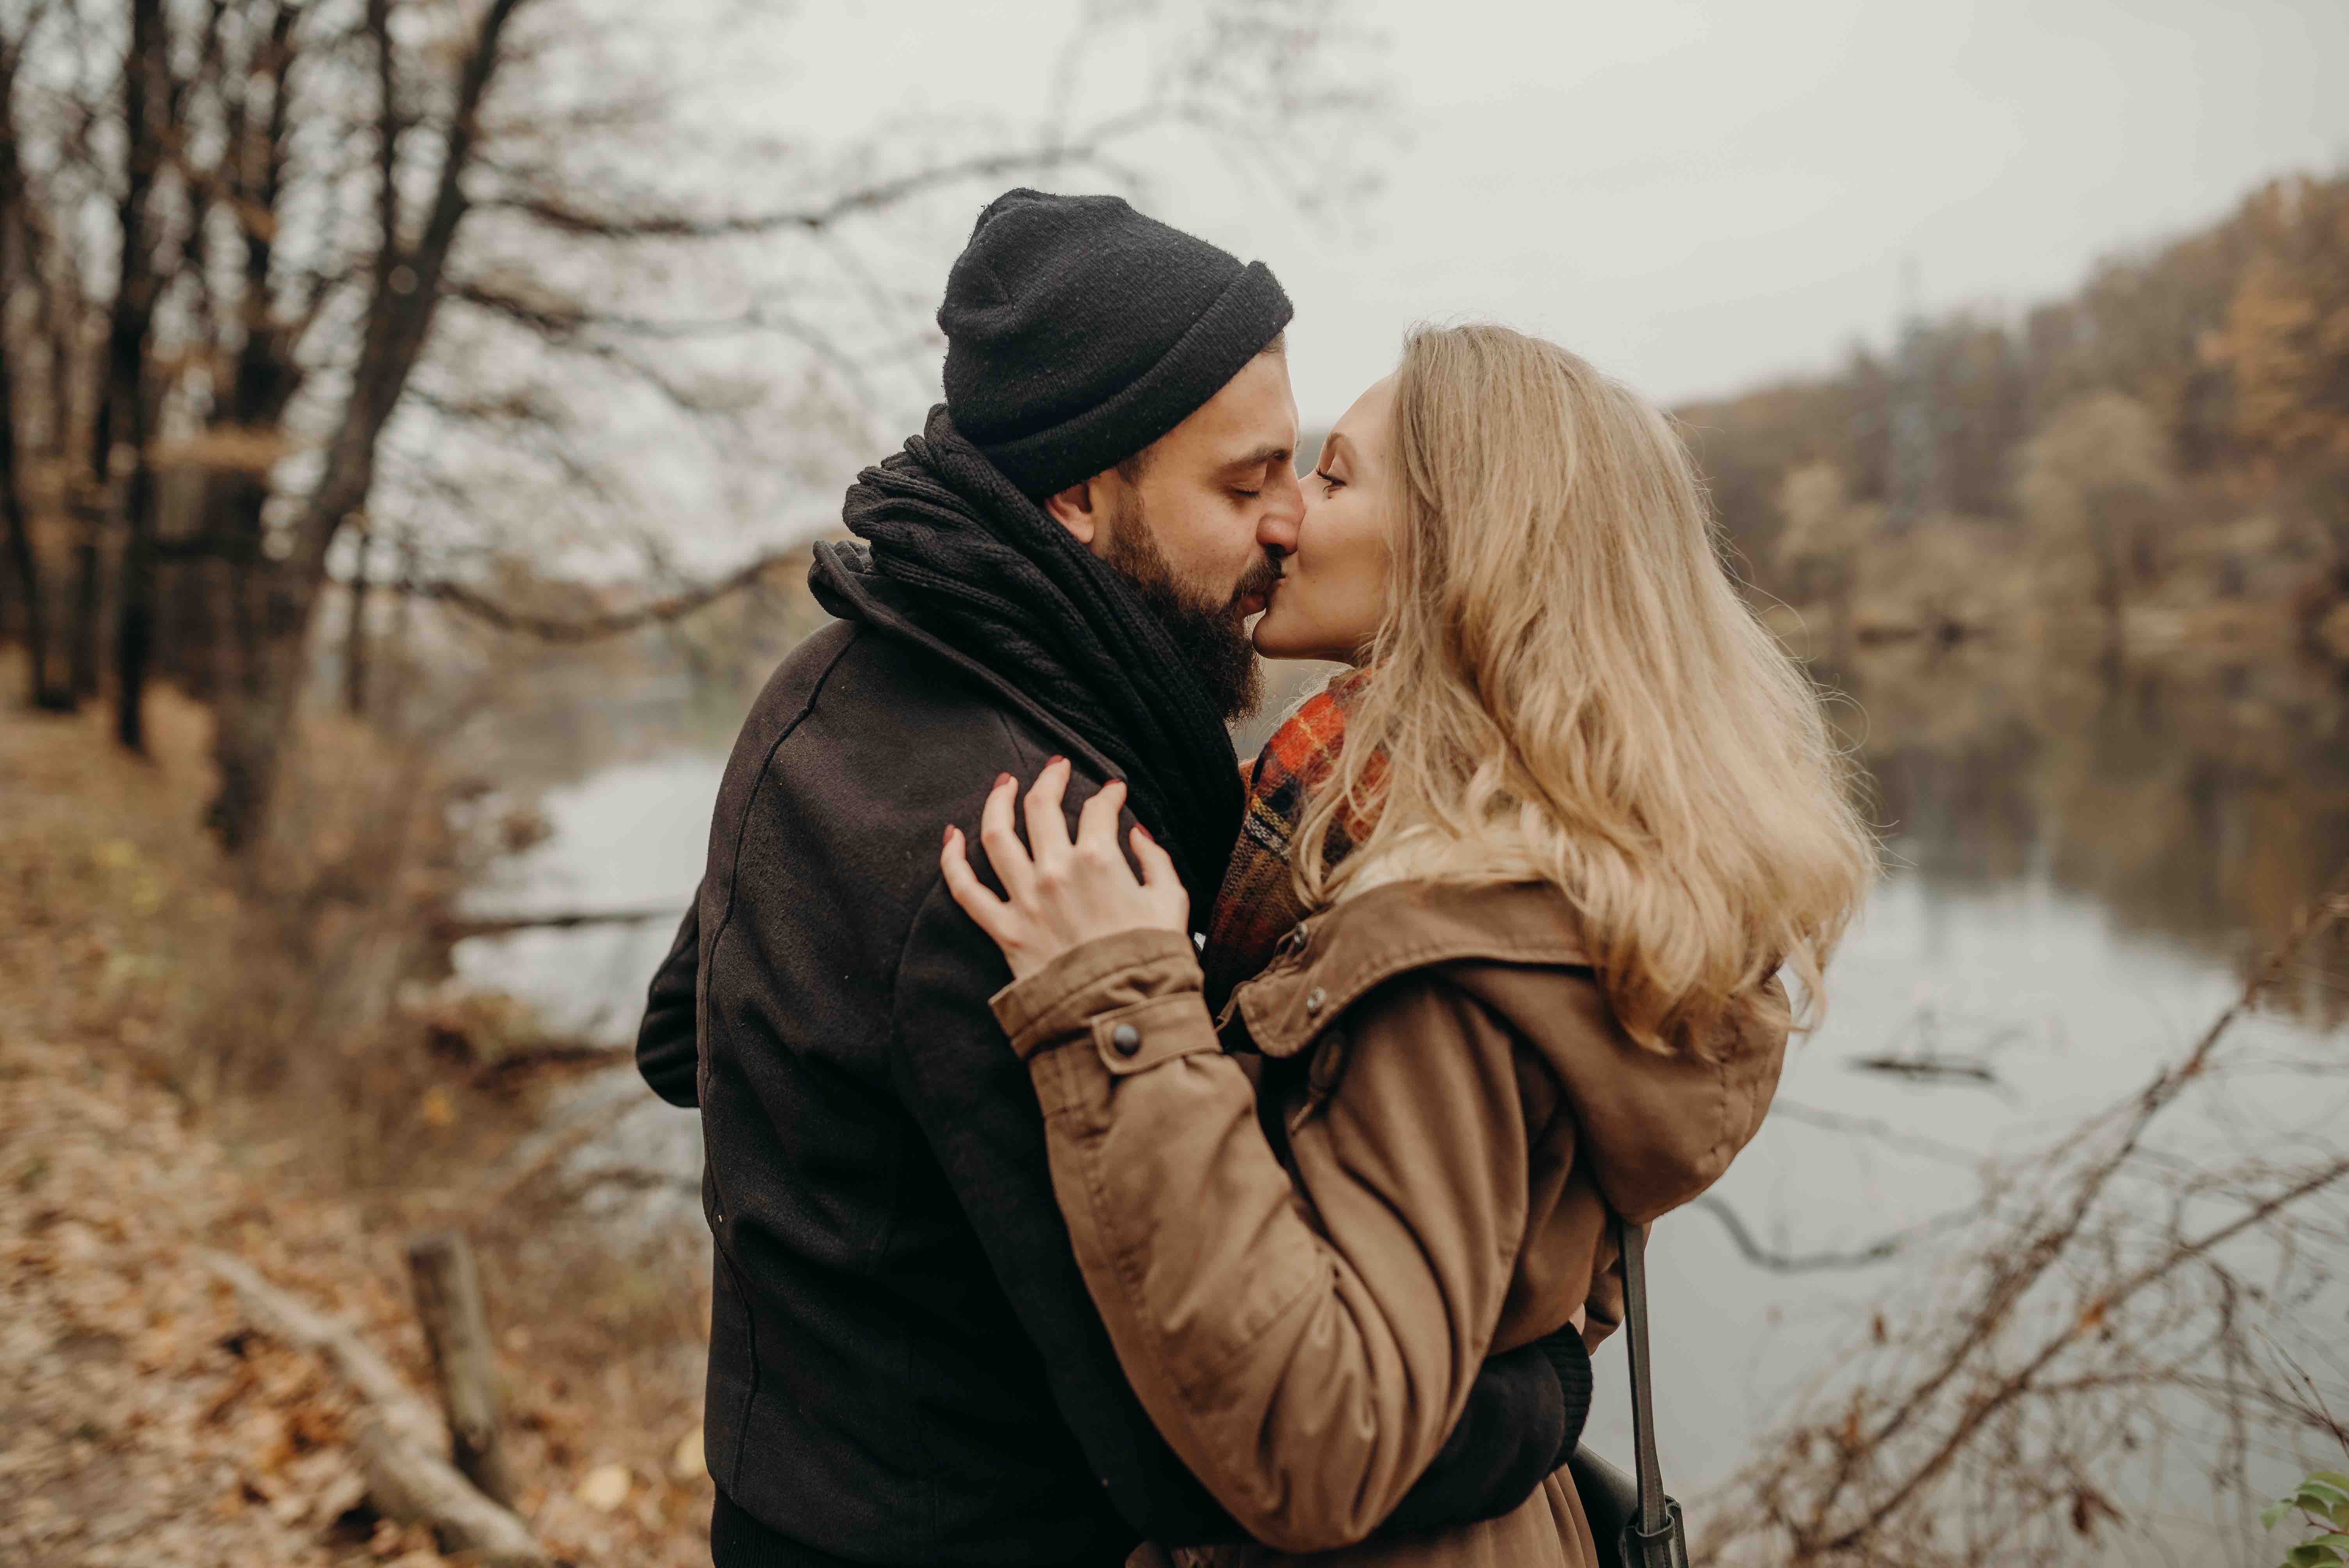 LightWorkers Despite What You've Heard, Your Spouse Is Not Your Other Half.